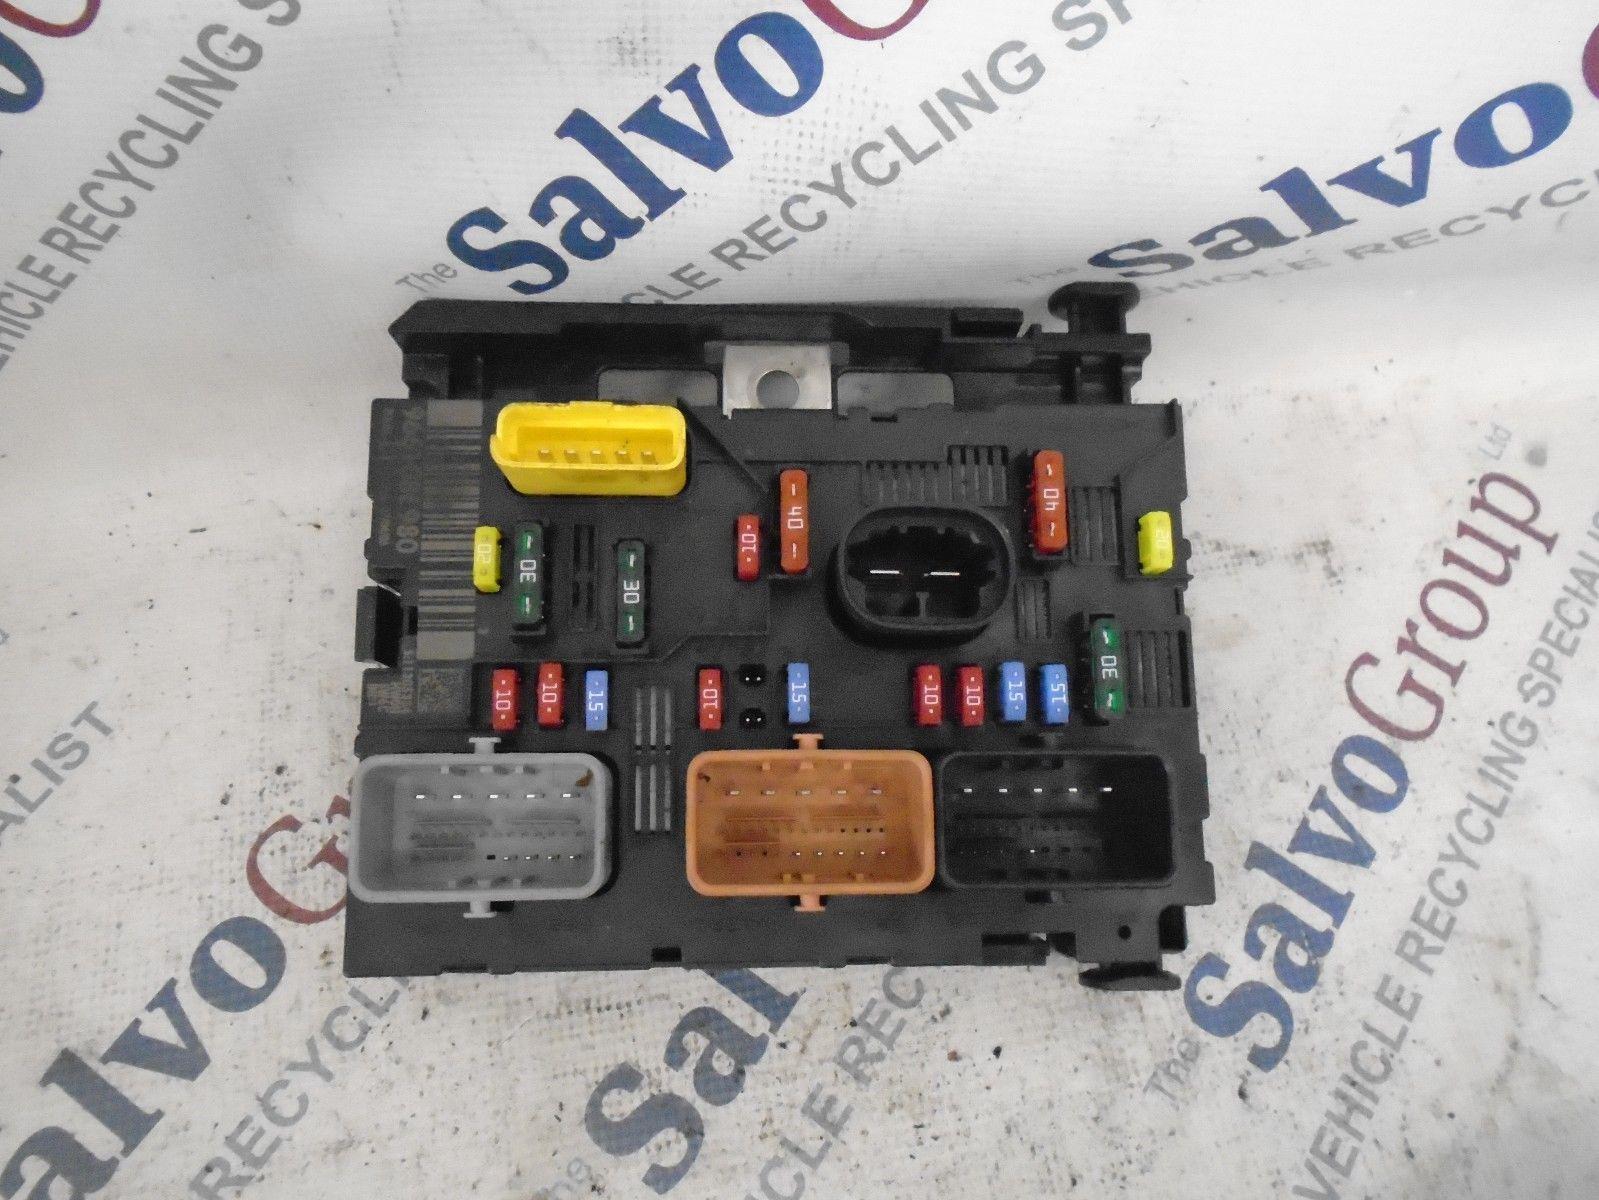 hight resolution of hight resolution of fuse box in citroen c2 wiring diagrams scematic citroen c2 fuse box problems